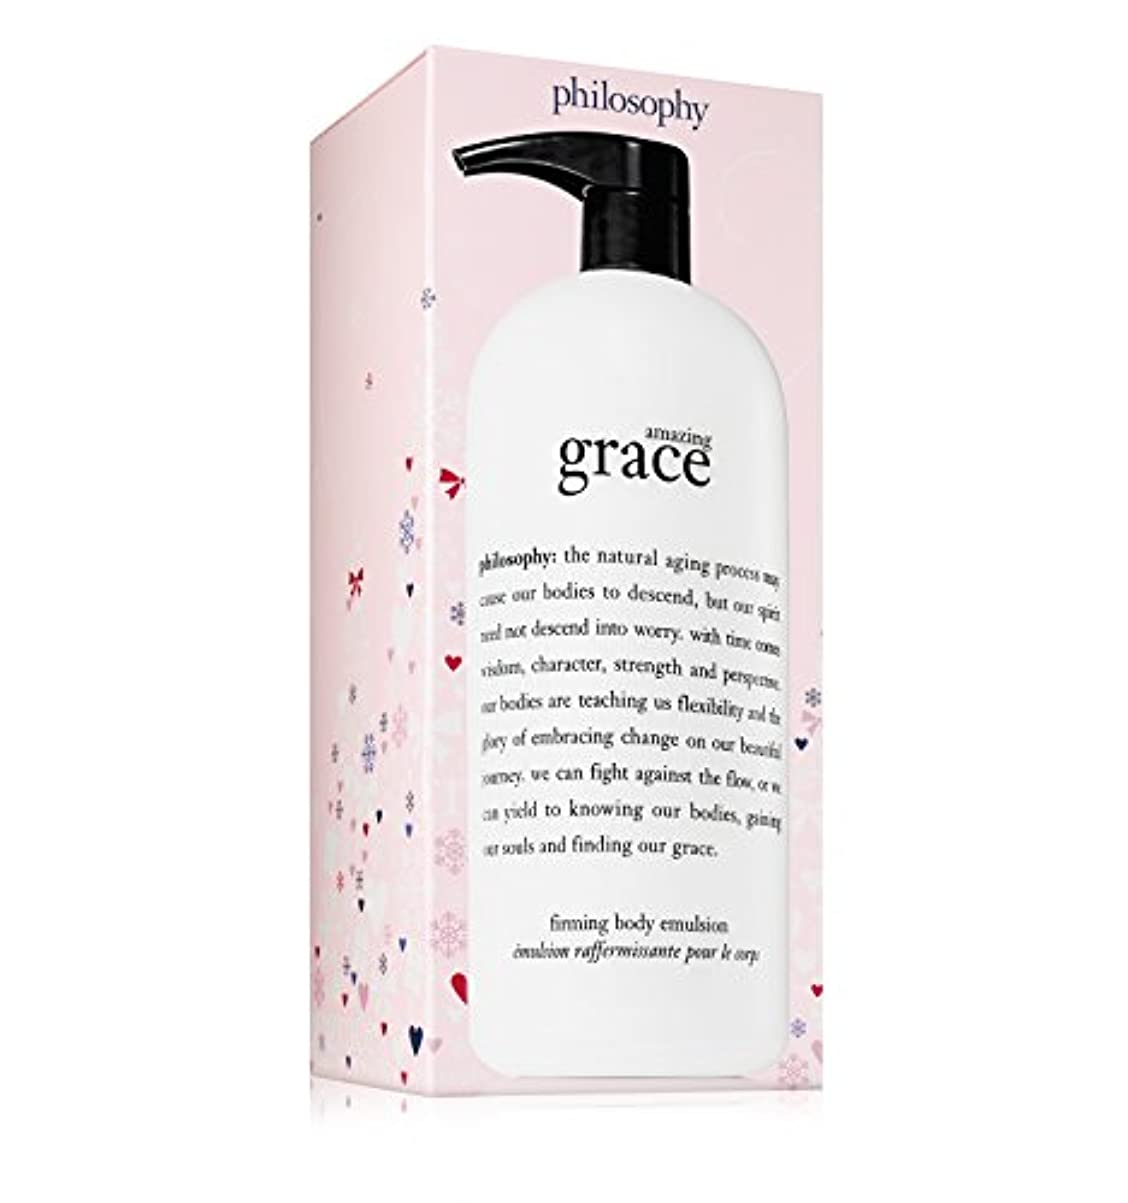 Philosophy - Amazing Grace Firming Body Emulsion Jumbo Limited Edition Holiday 2017